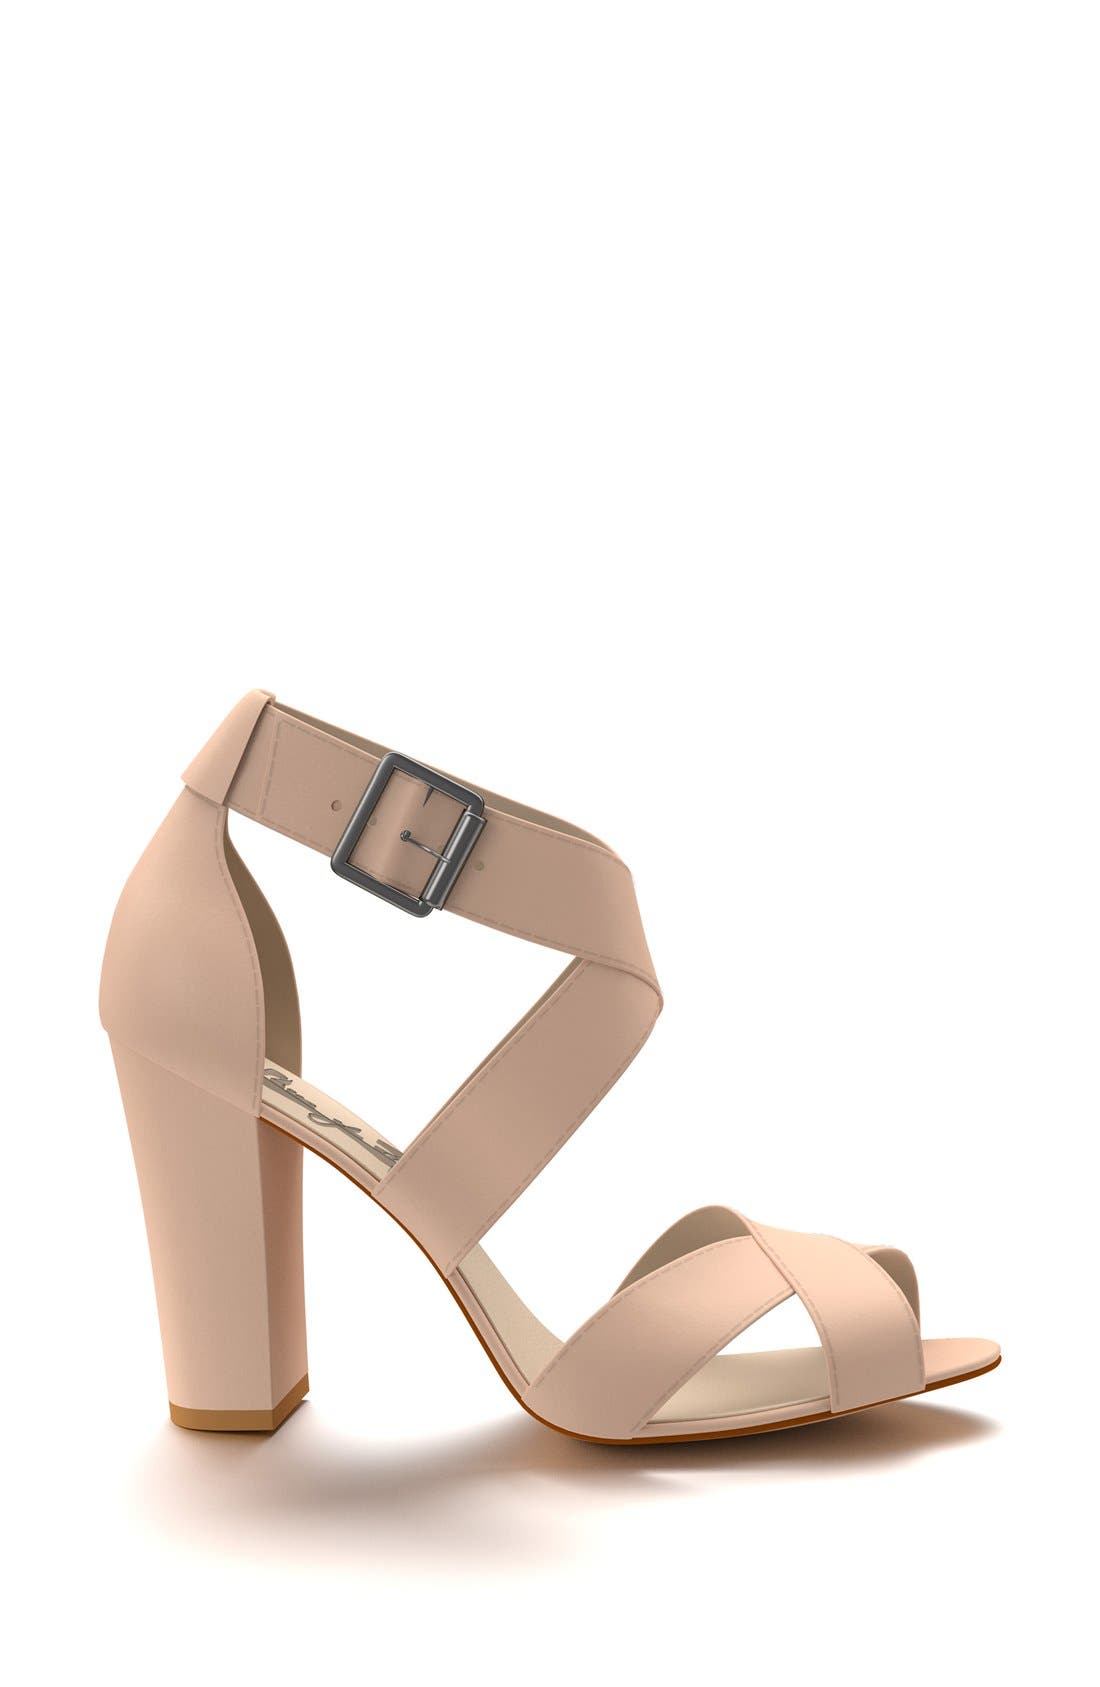 Crisscross Strap Block Heel Sandal,                             Alternate thumbnail 4, color,                             250